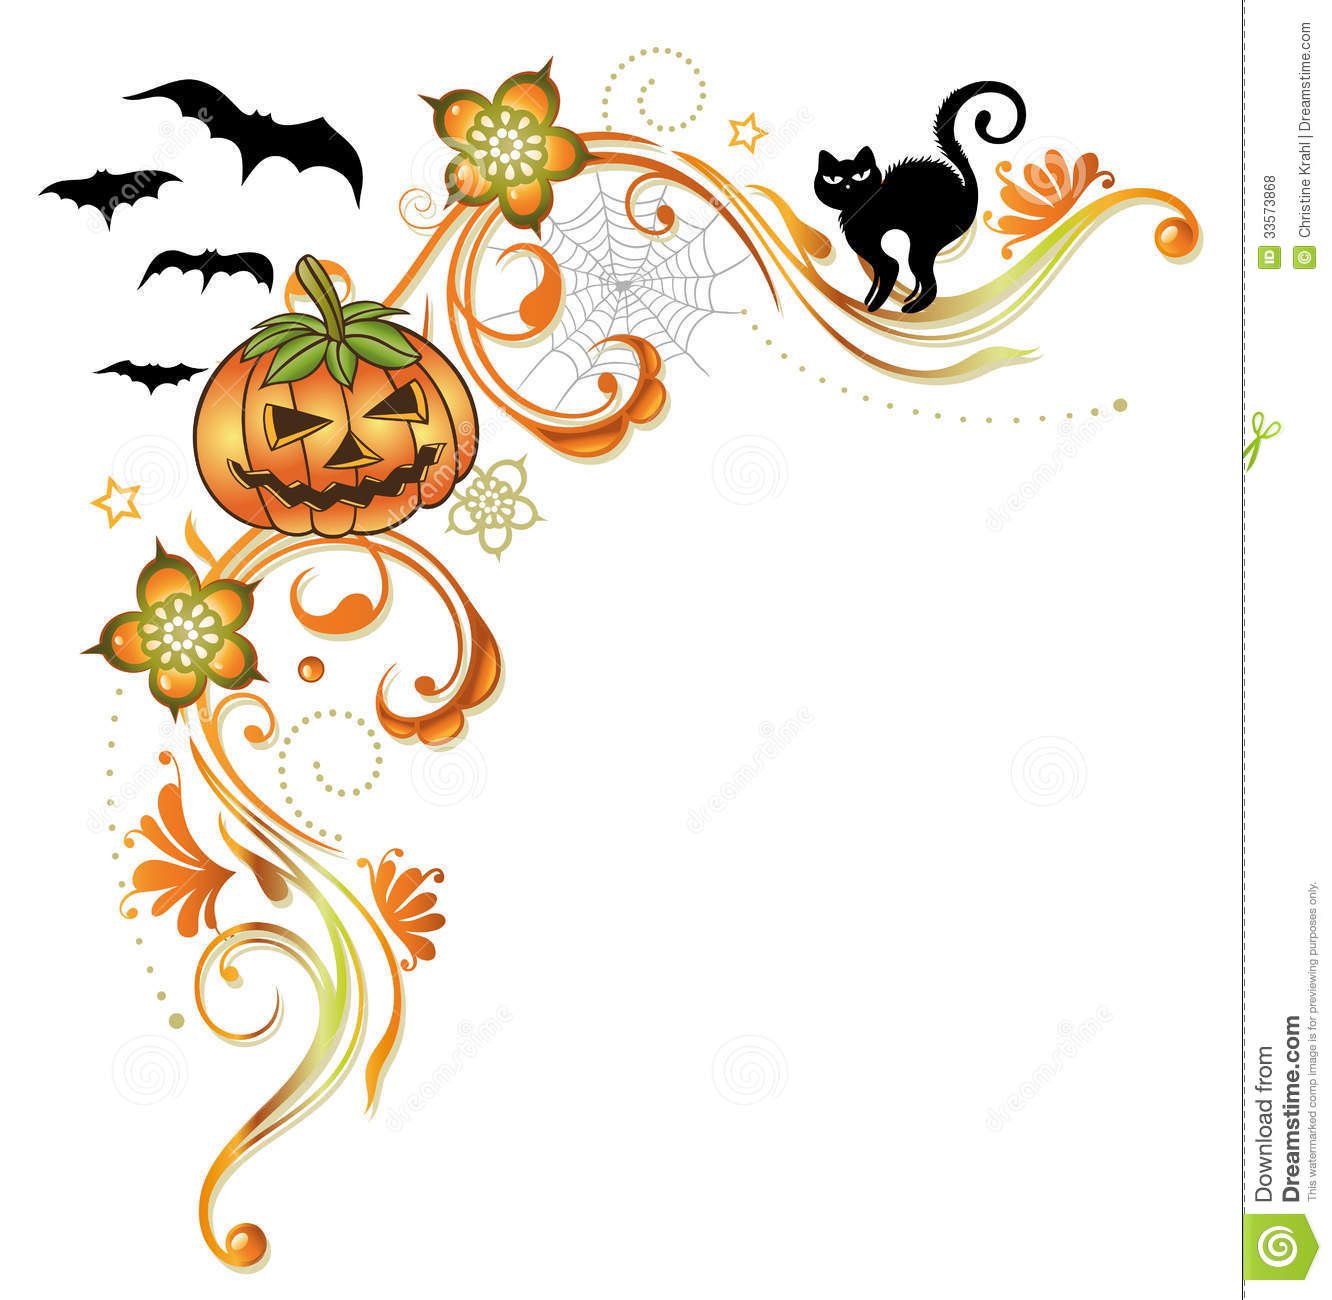 Fall And Halloween Clipart at GetDrawings.com.